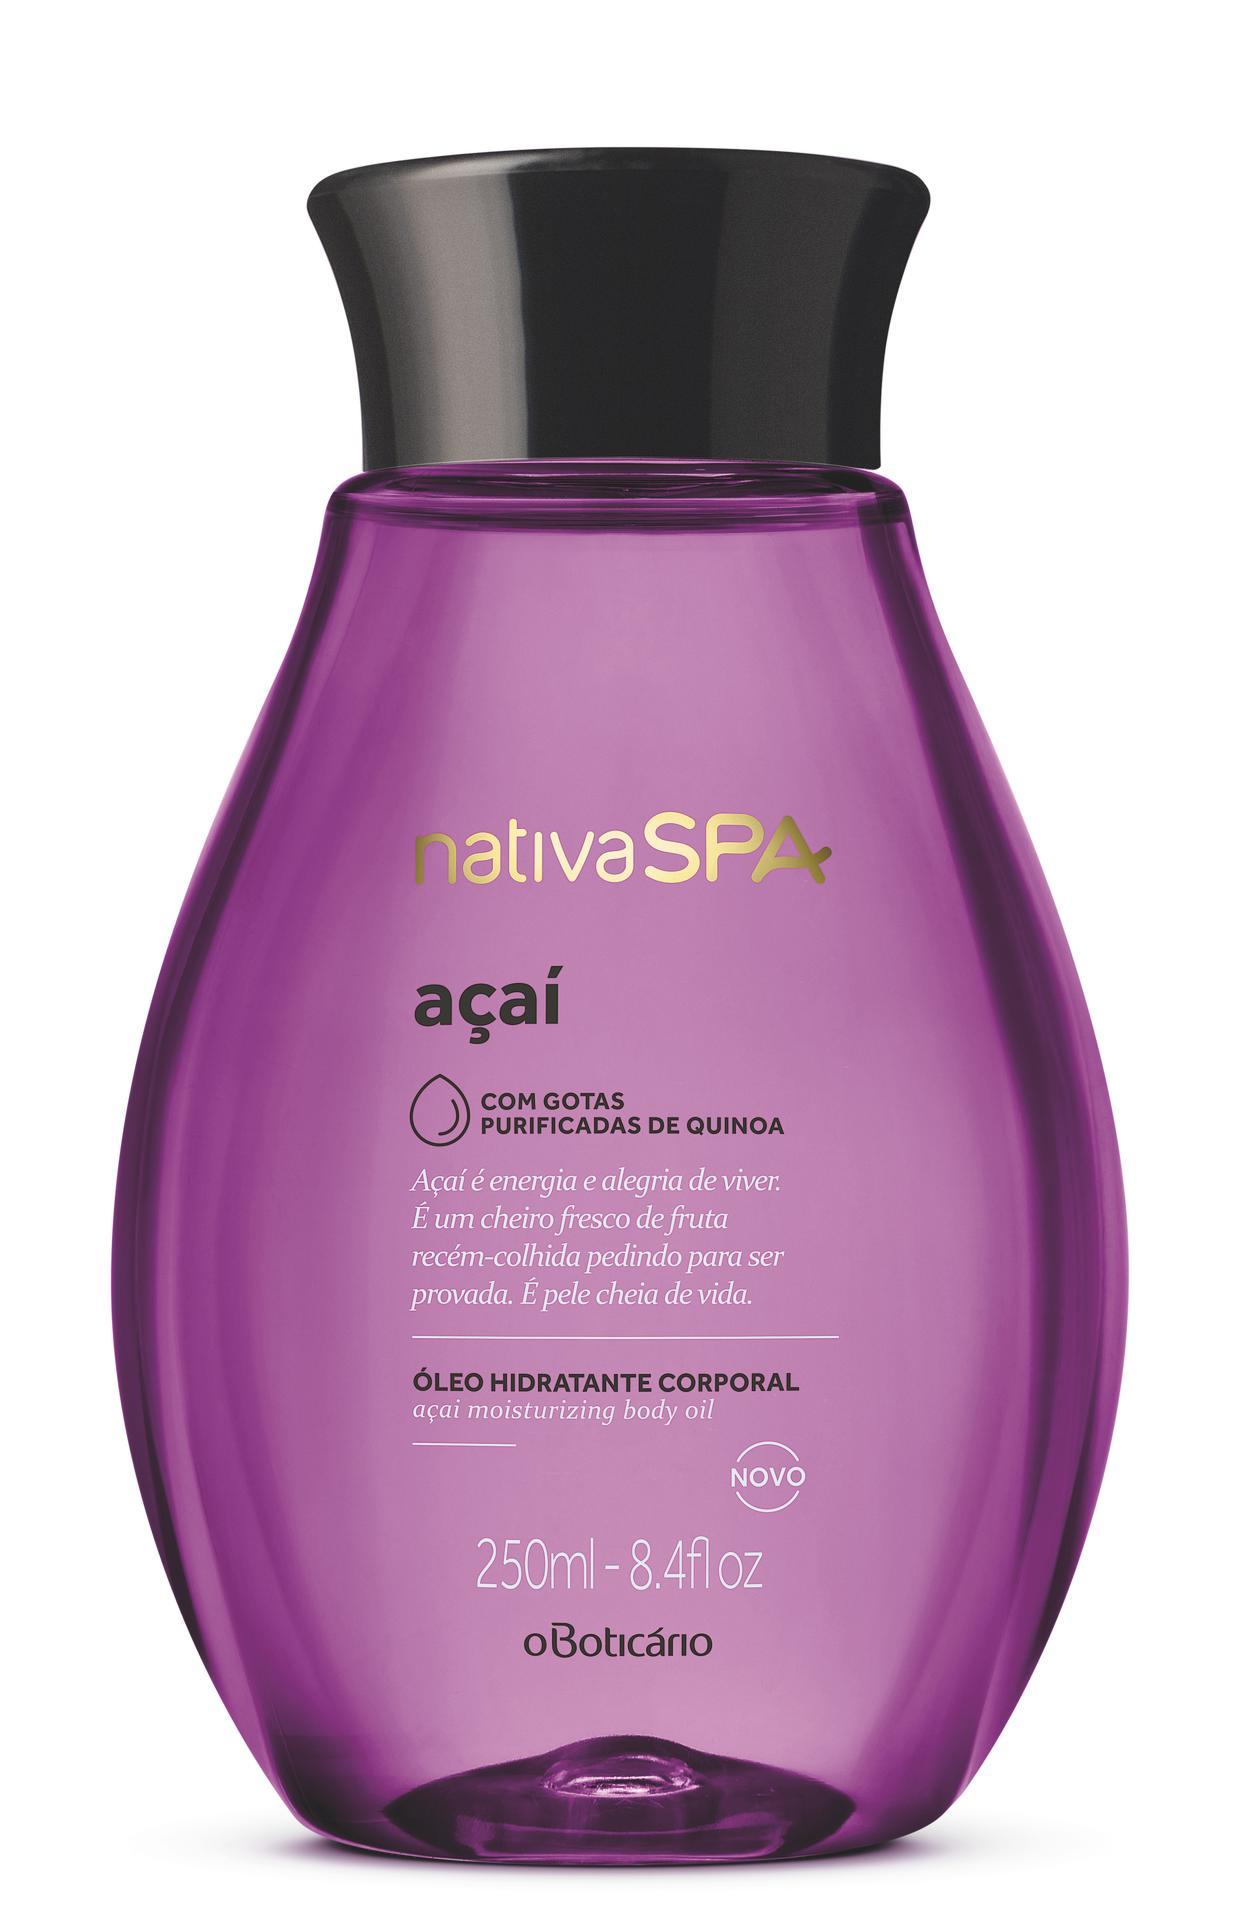 nativa-spa-acai-body-oil-250ml